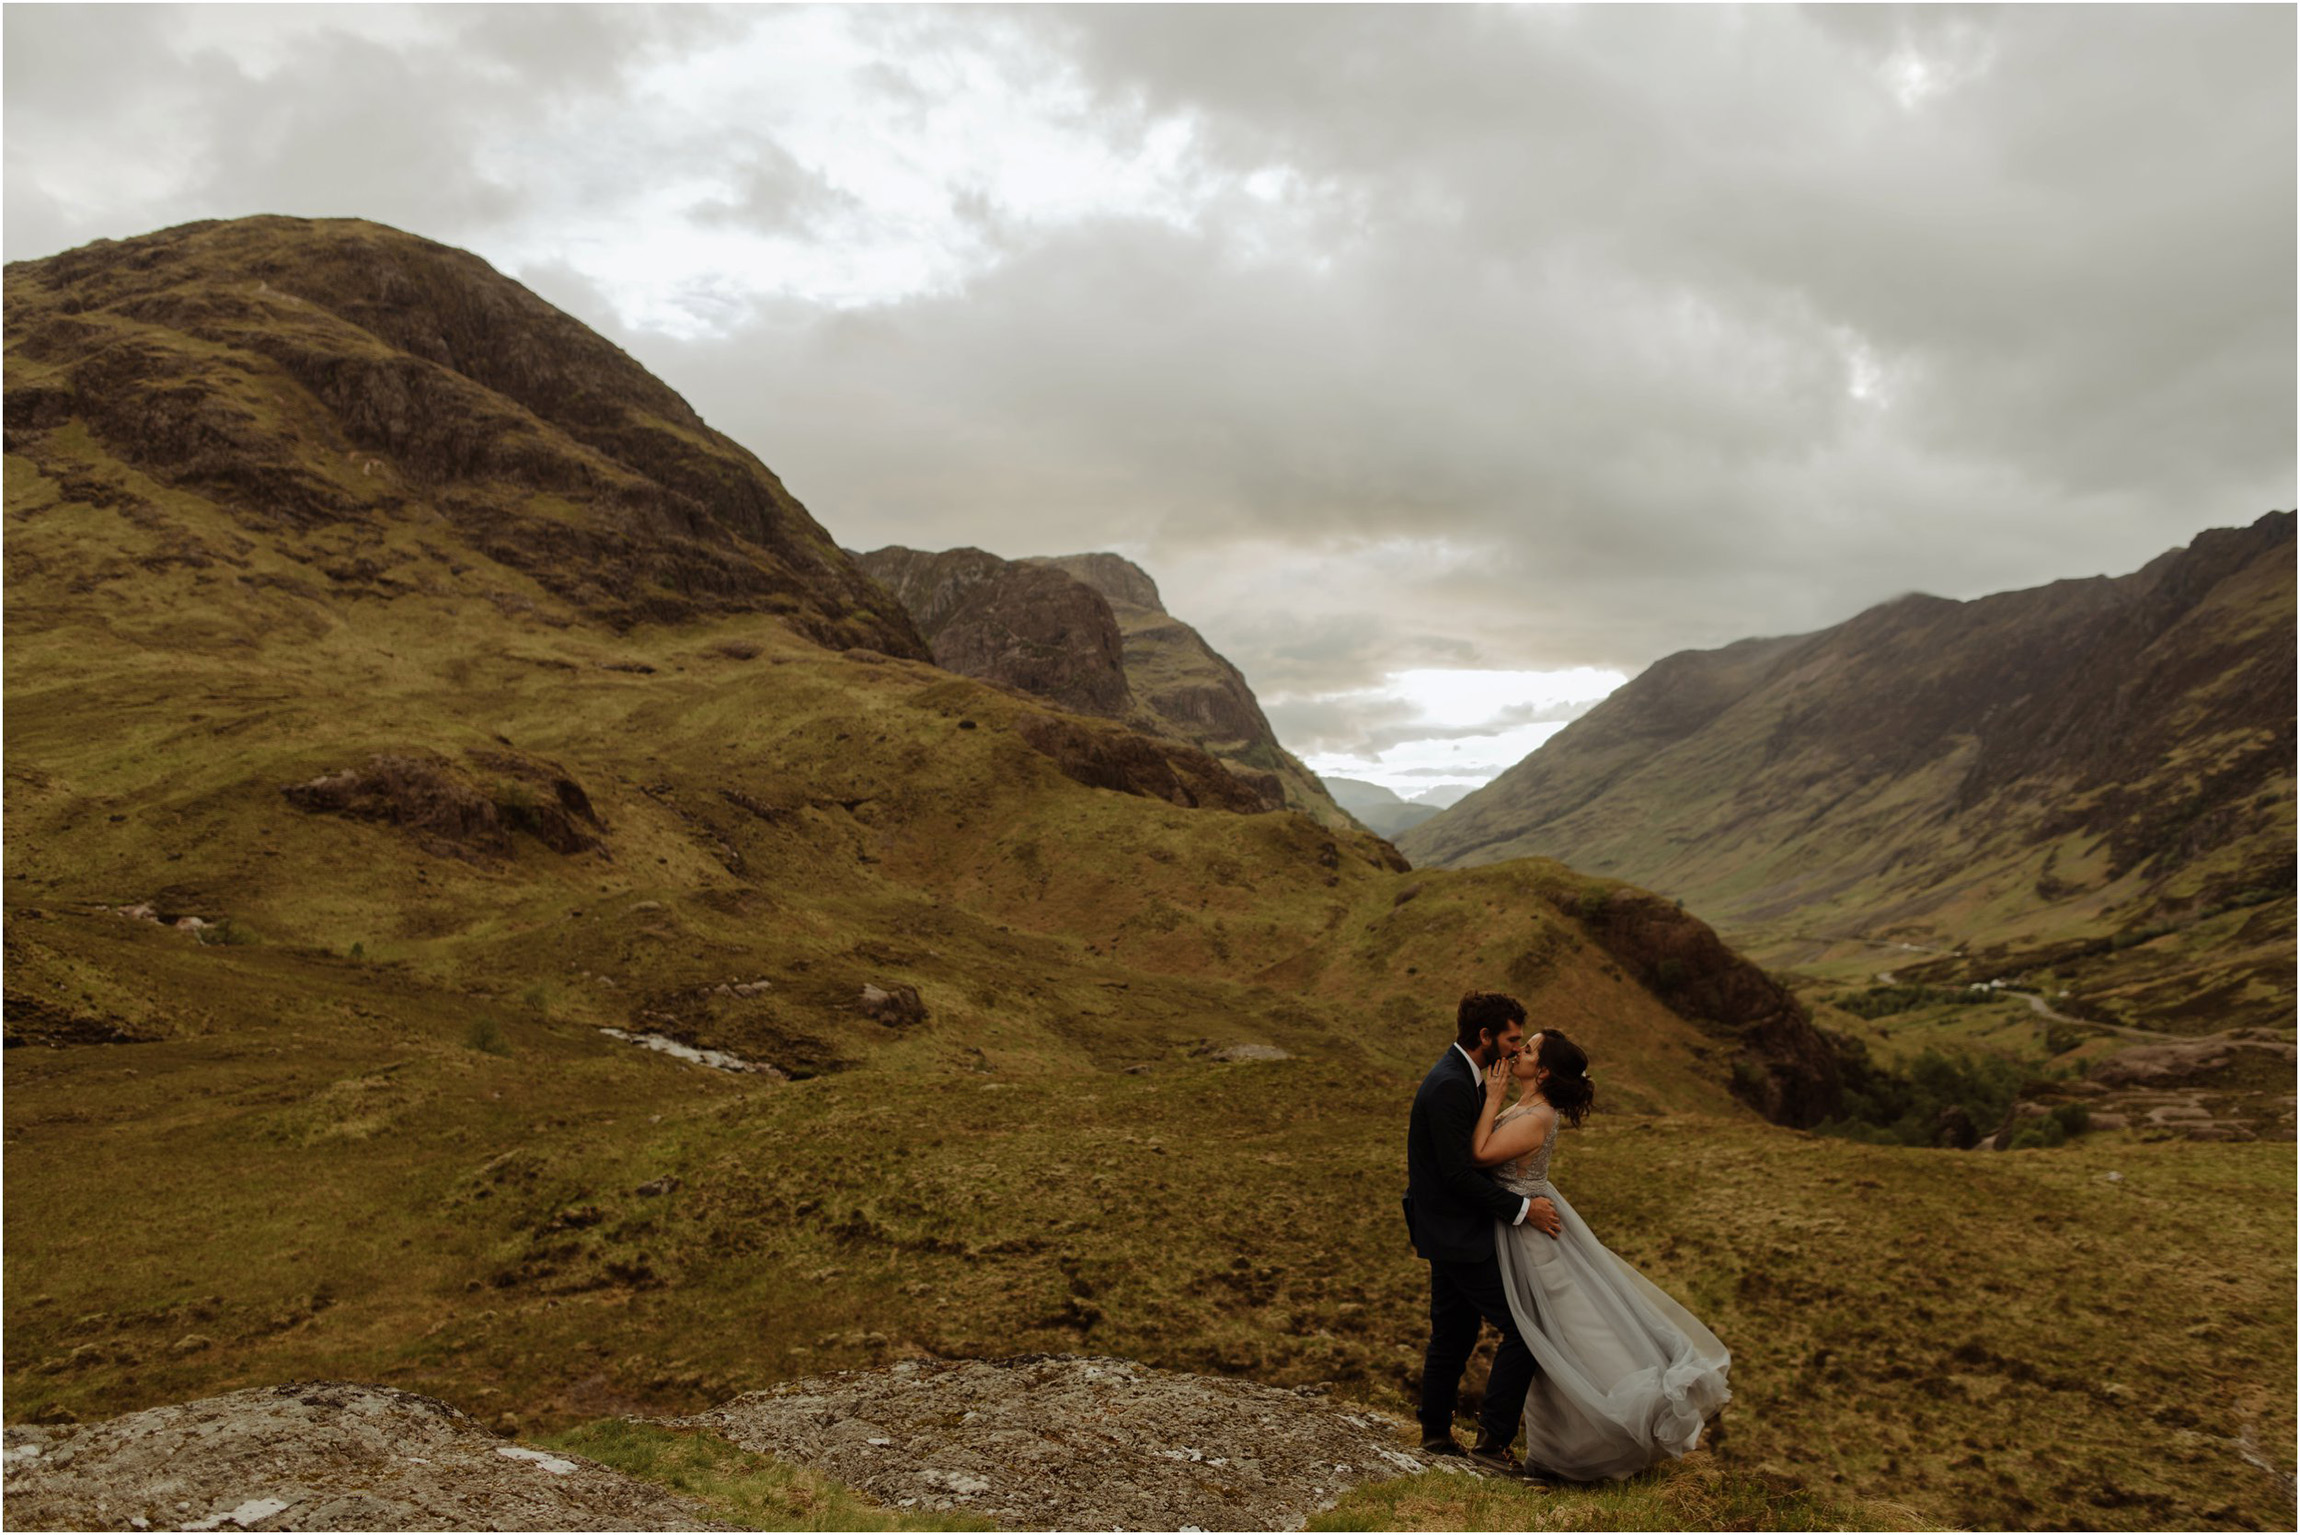 Scotland Wedding Photographer_Glencoe_Melanie_Jim_Anniversary_008.jpg